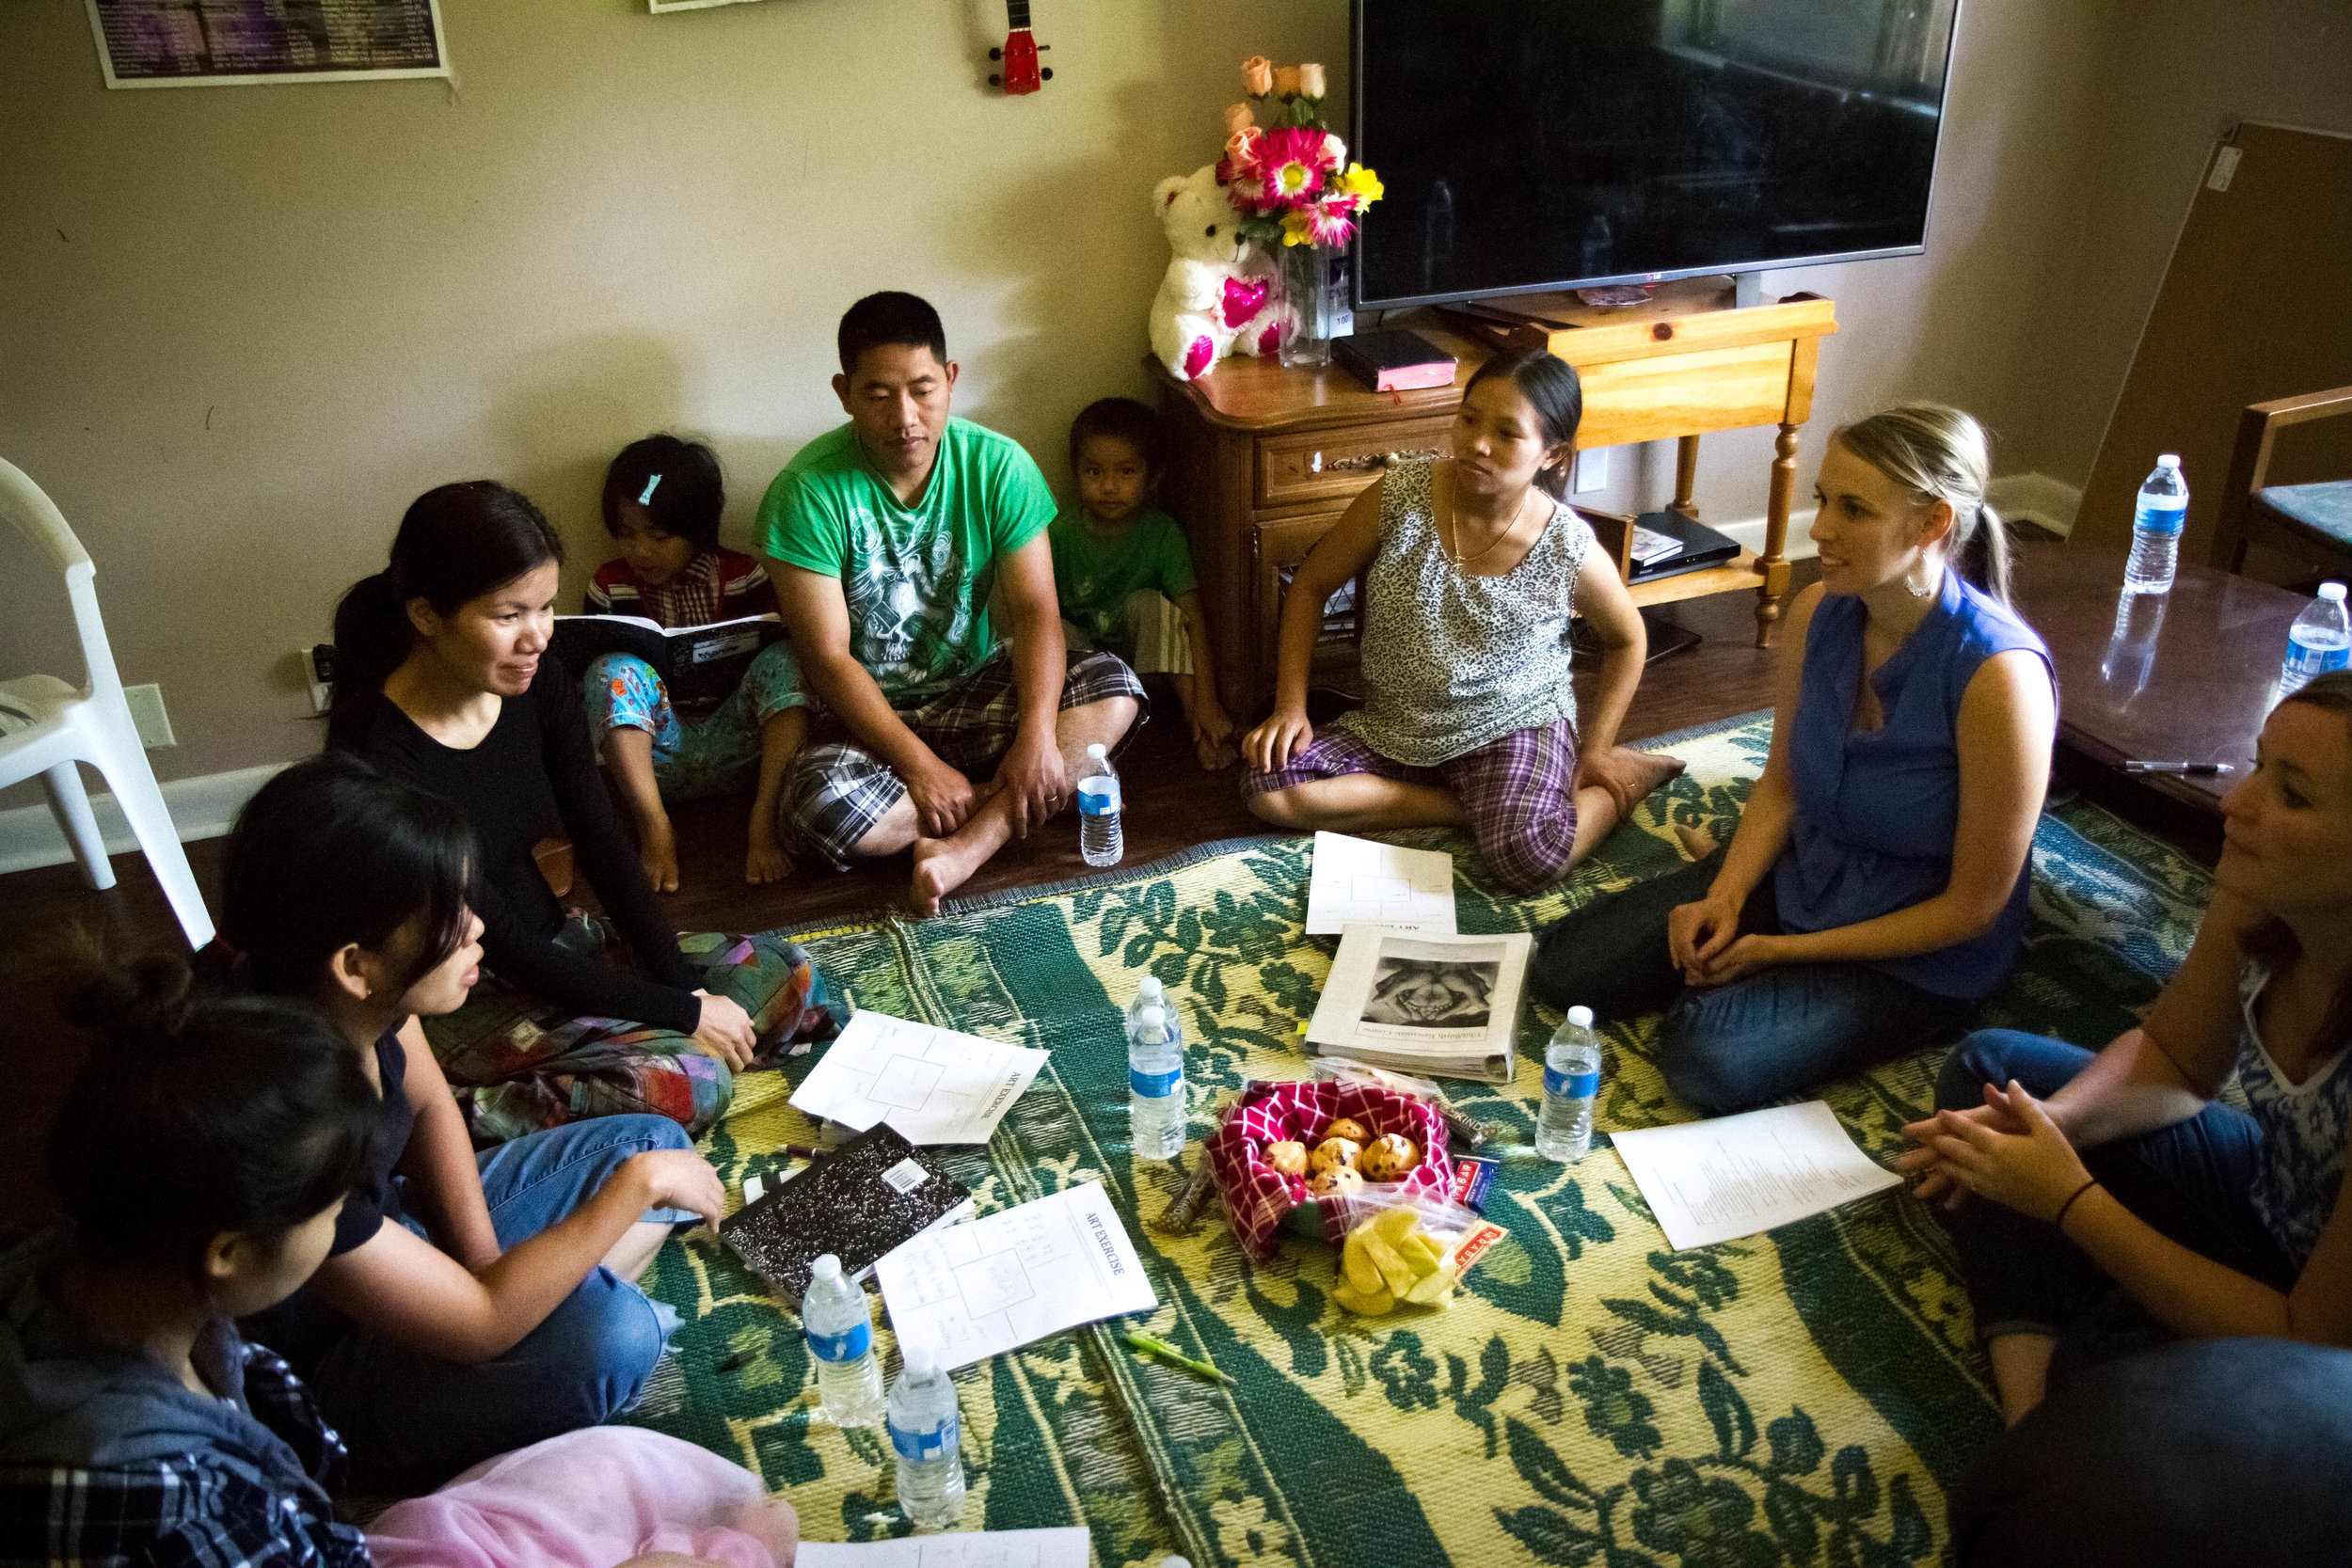 Kendice Hartnell facilitates a childbirth education class for the Burmese community, who are adjusting to a medical system very different than their culture.